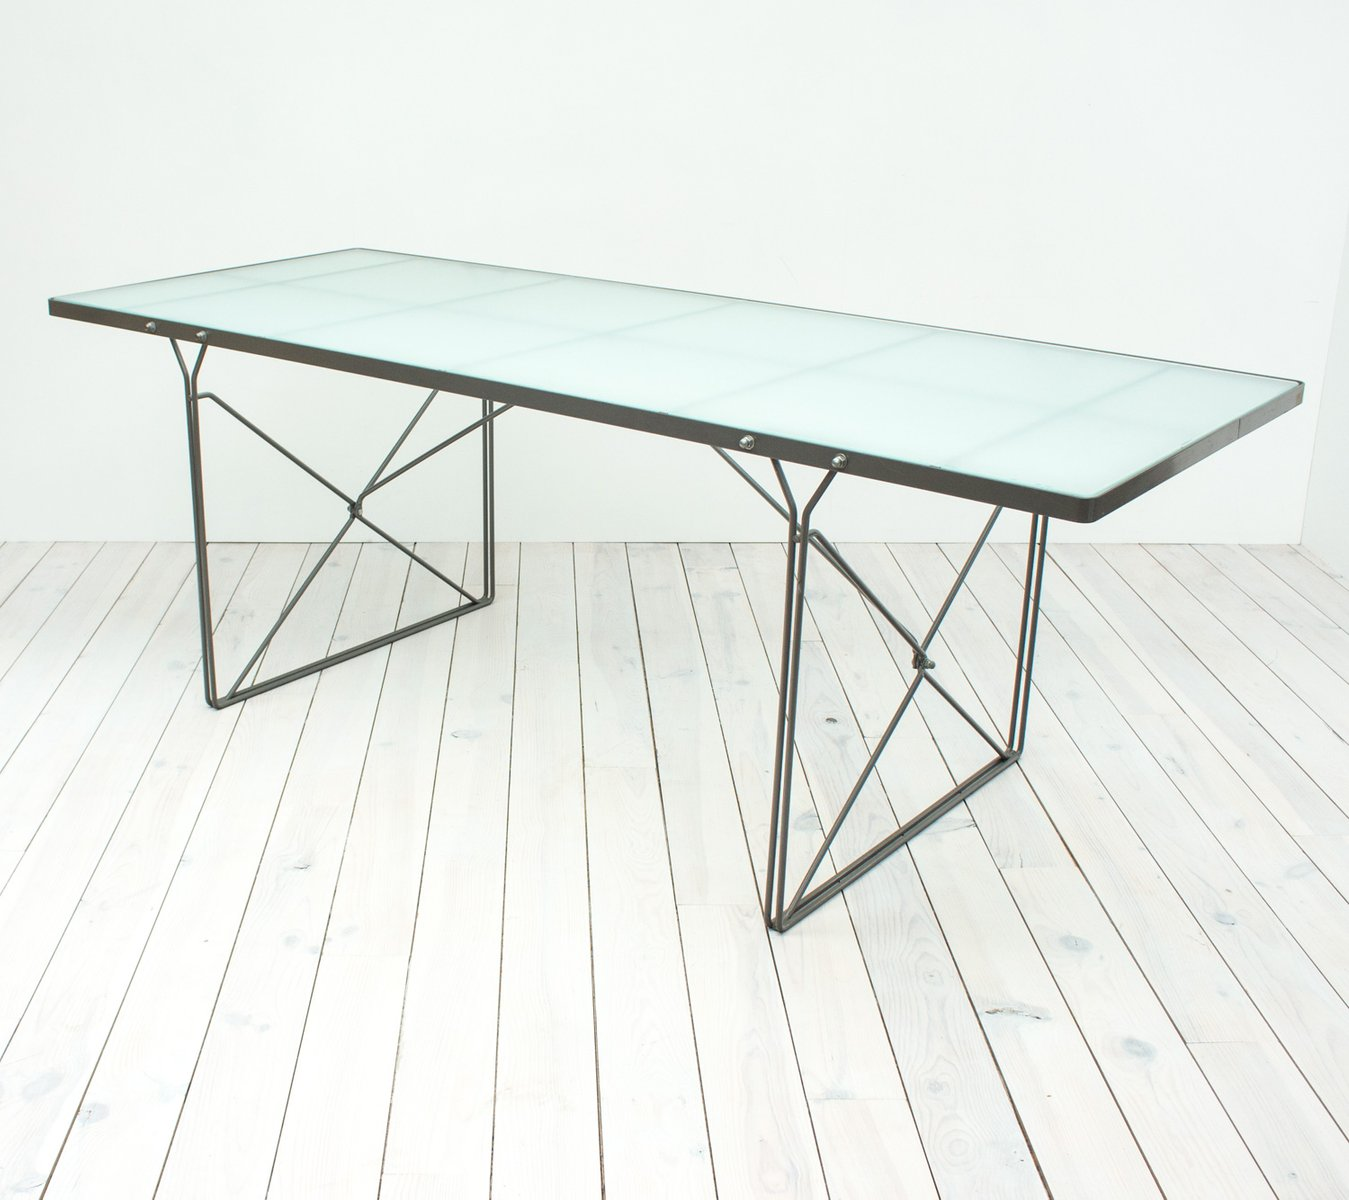 Moment Glass Dining Table By Niels Gammelgaard For Ikea, 1987